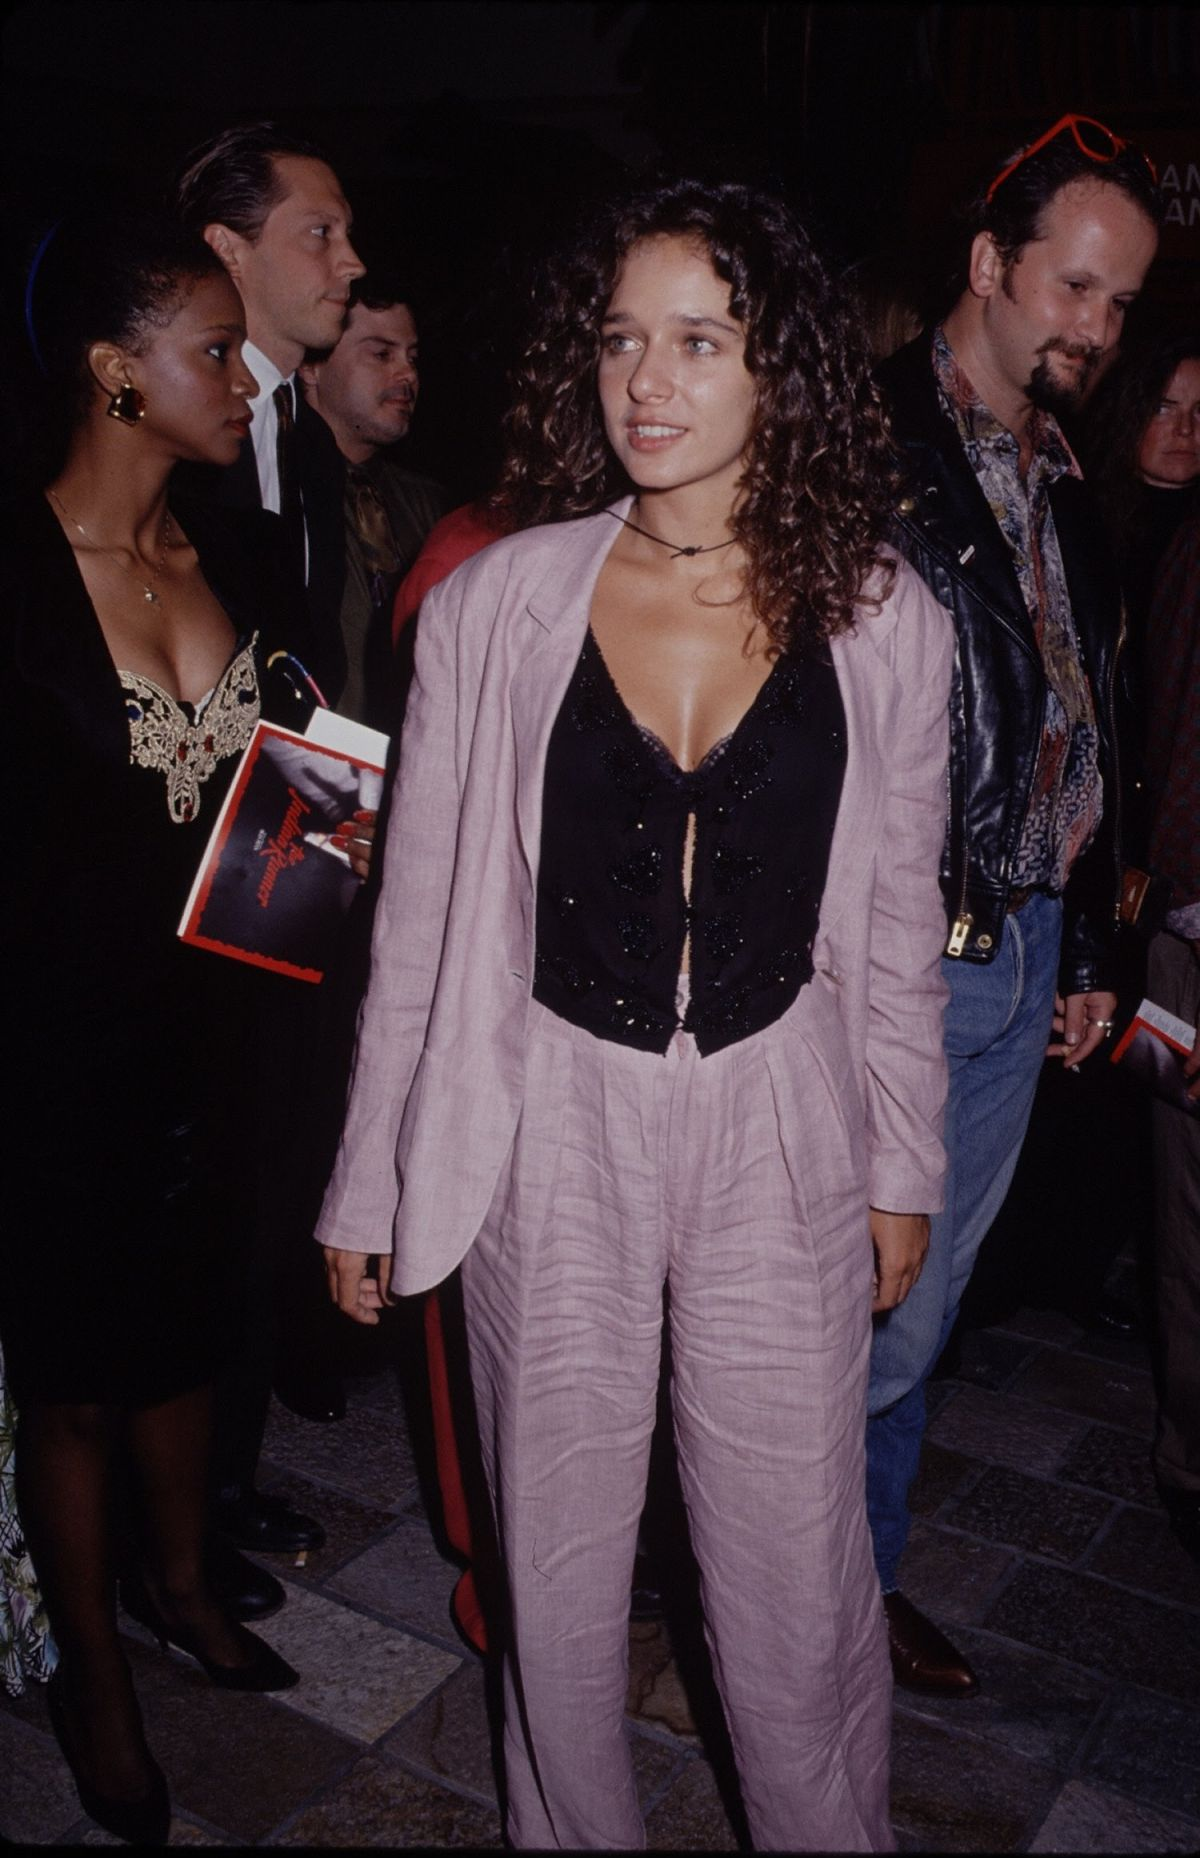 Best from the Past - VALERIA GOLINO at